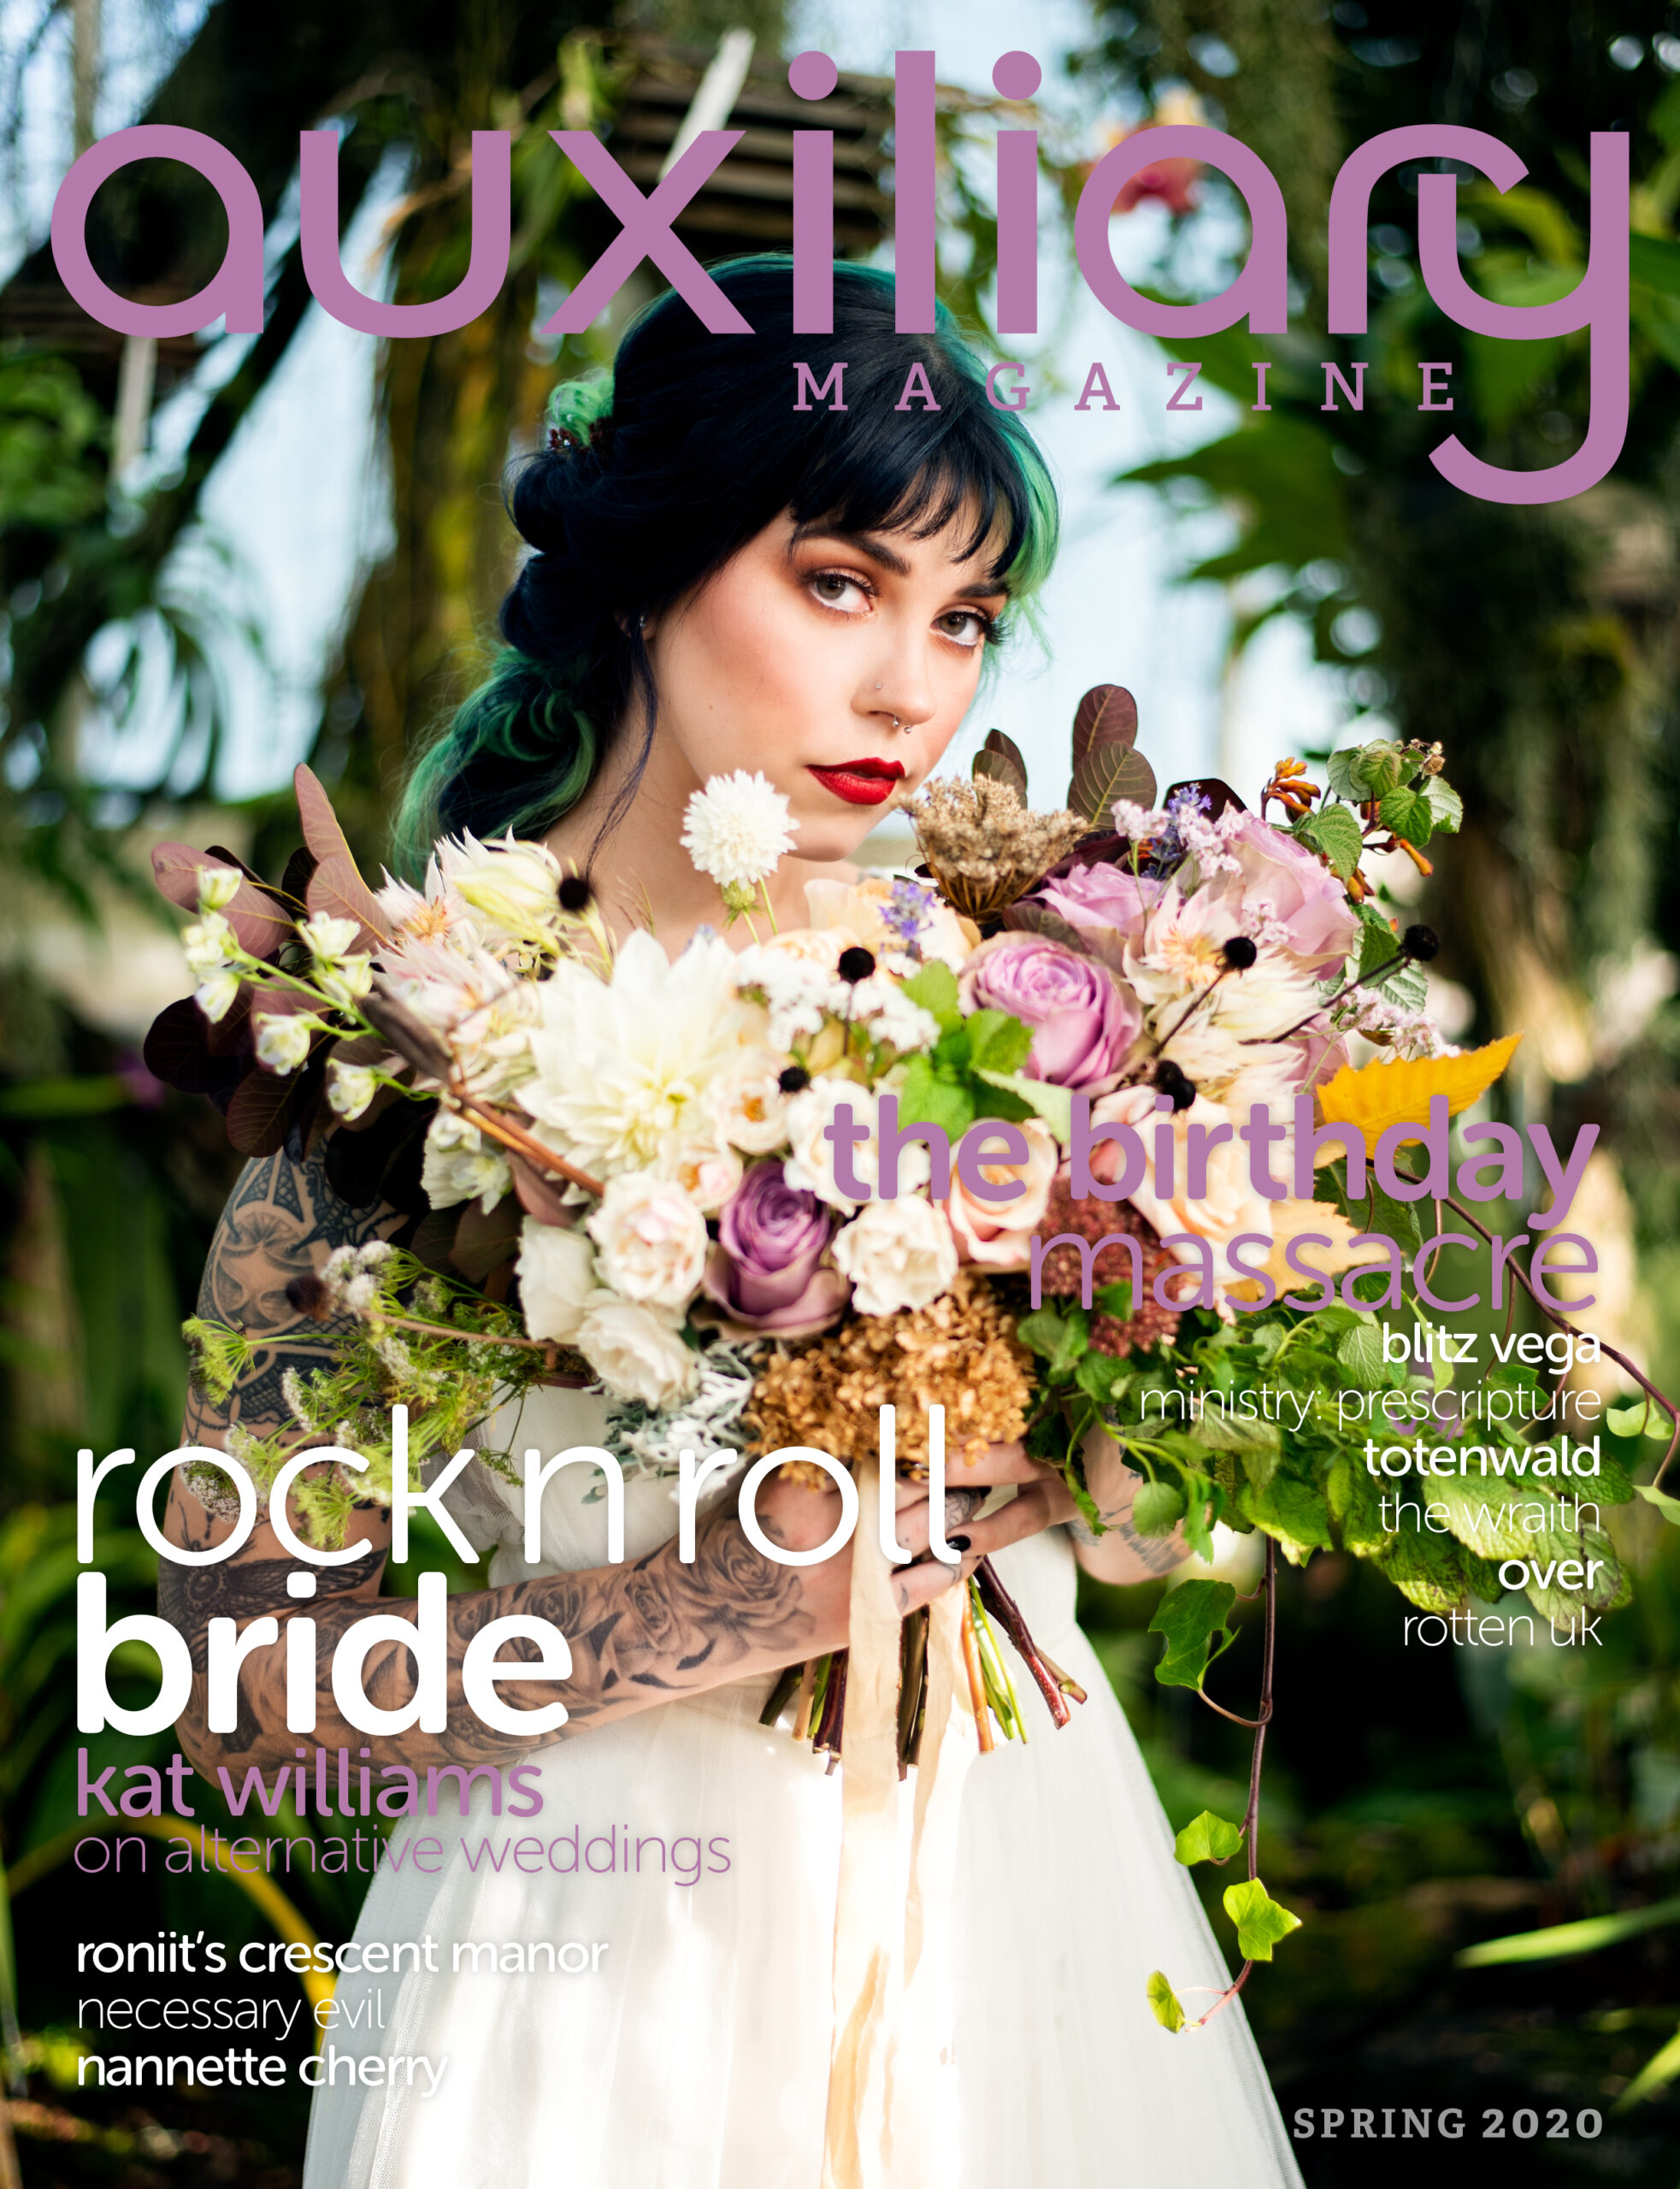 Auxiliary Magazine Spring 2020 Issue